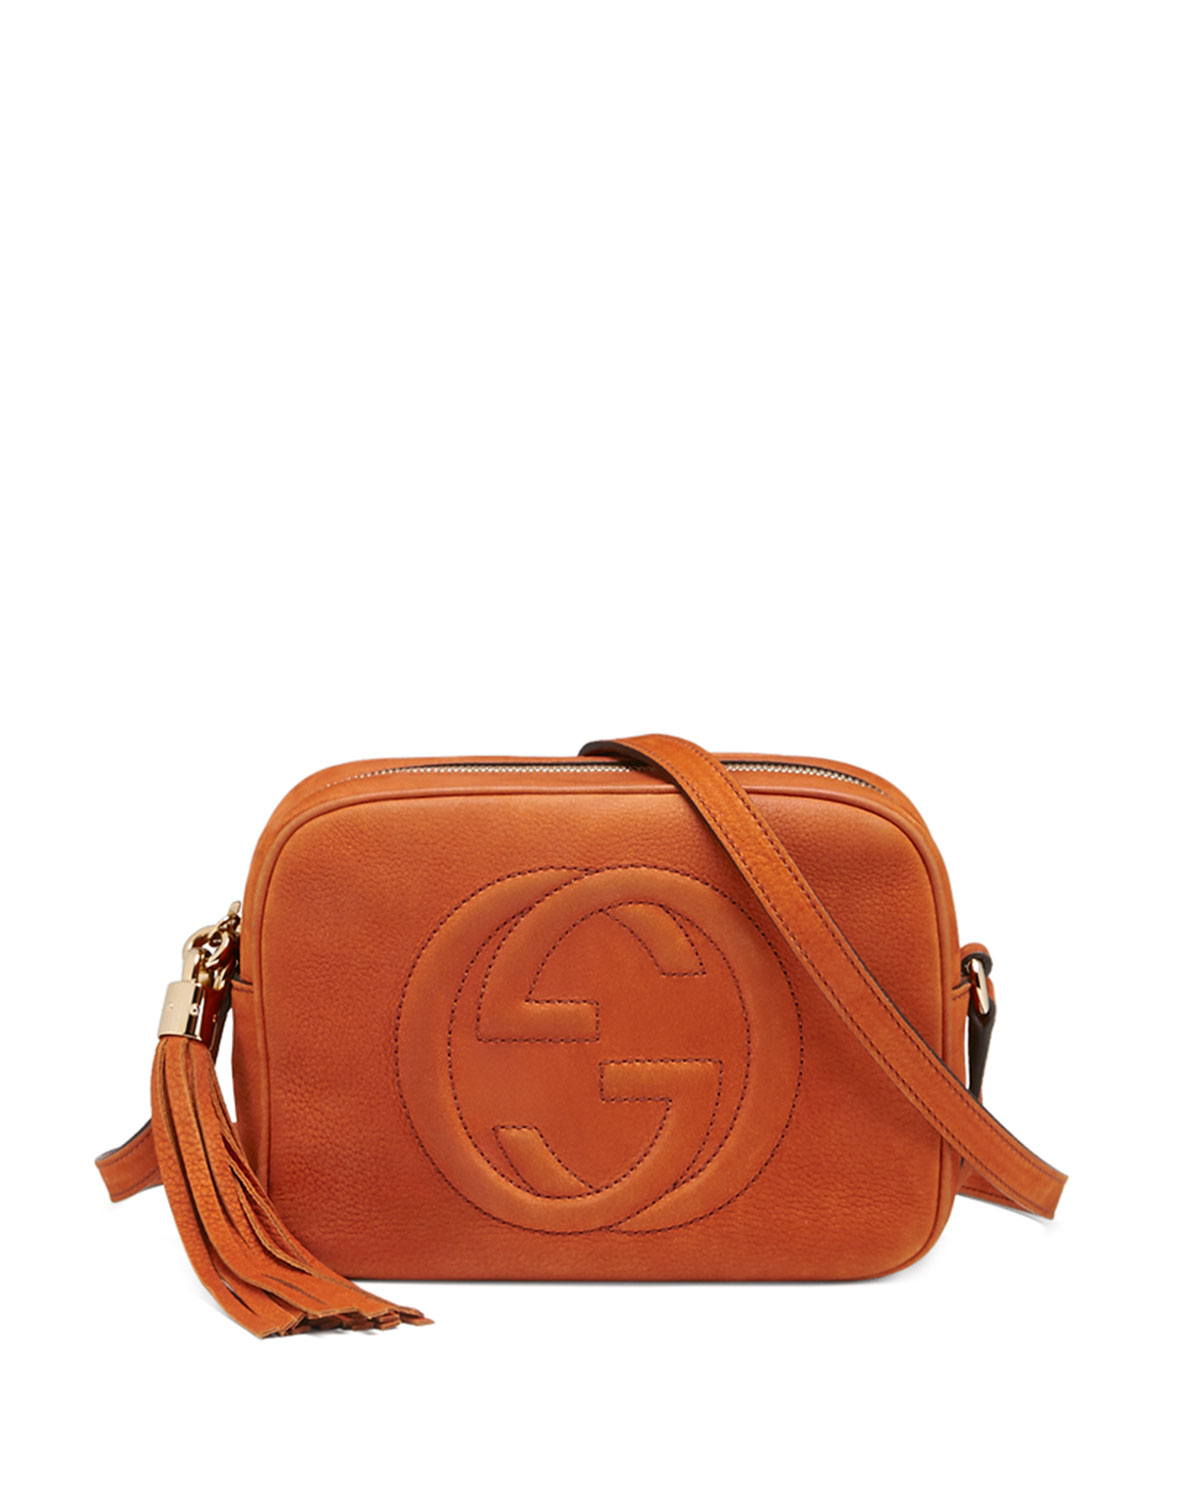 99ee0f9d3d76 Gucci Disco Bag Online | Stanford Center for Opportunity Policy in ...